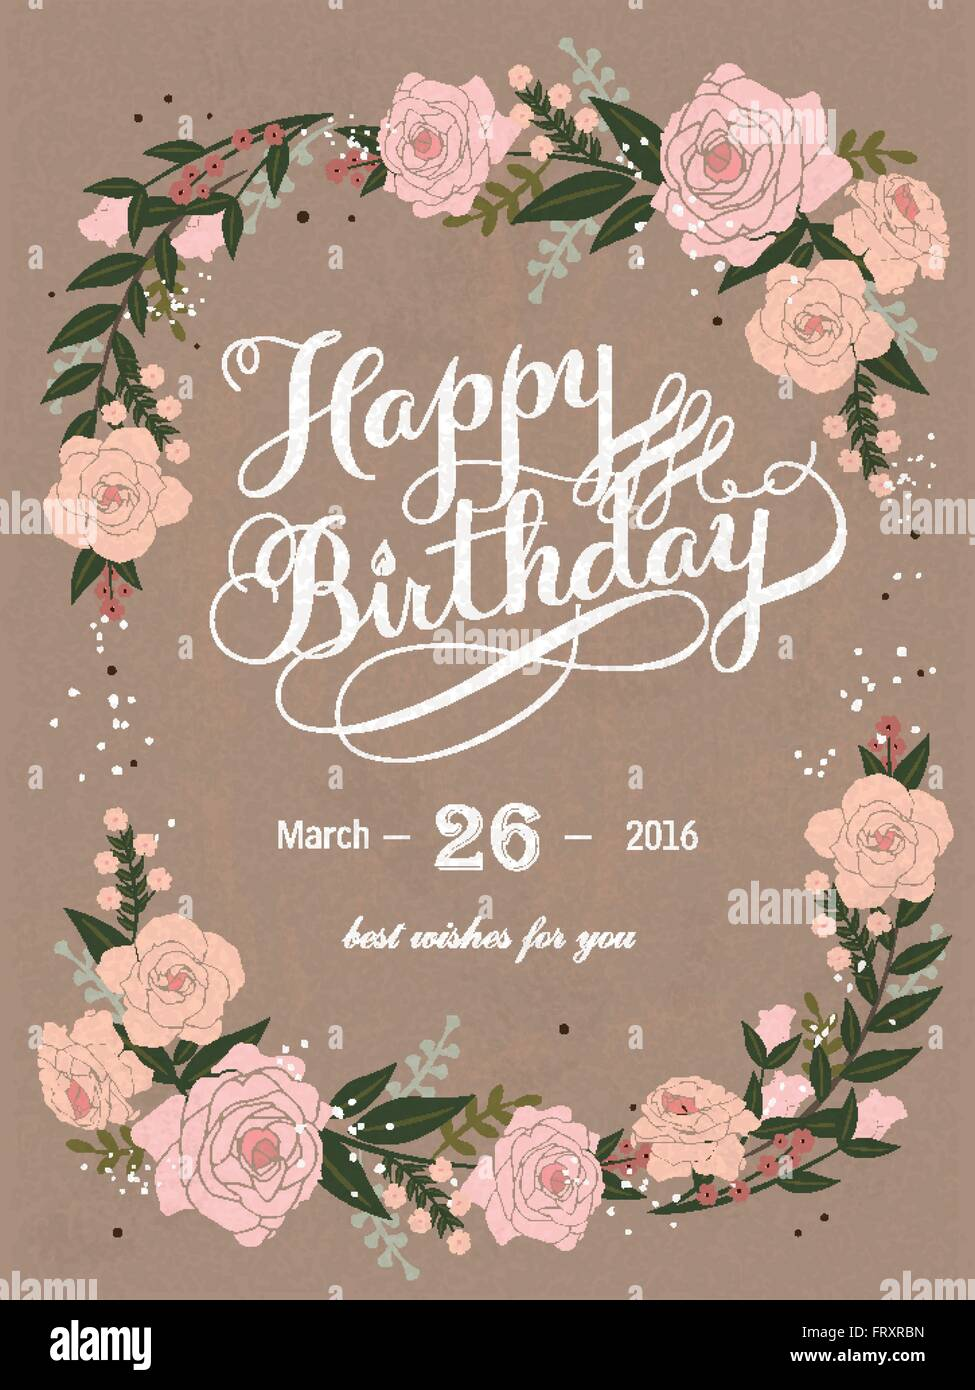 Romantic happy birthday calligraphy and poster design with